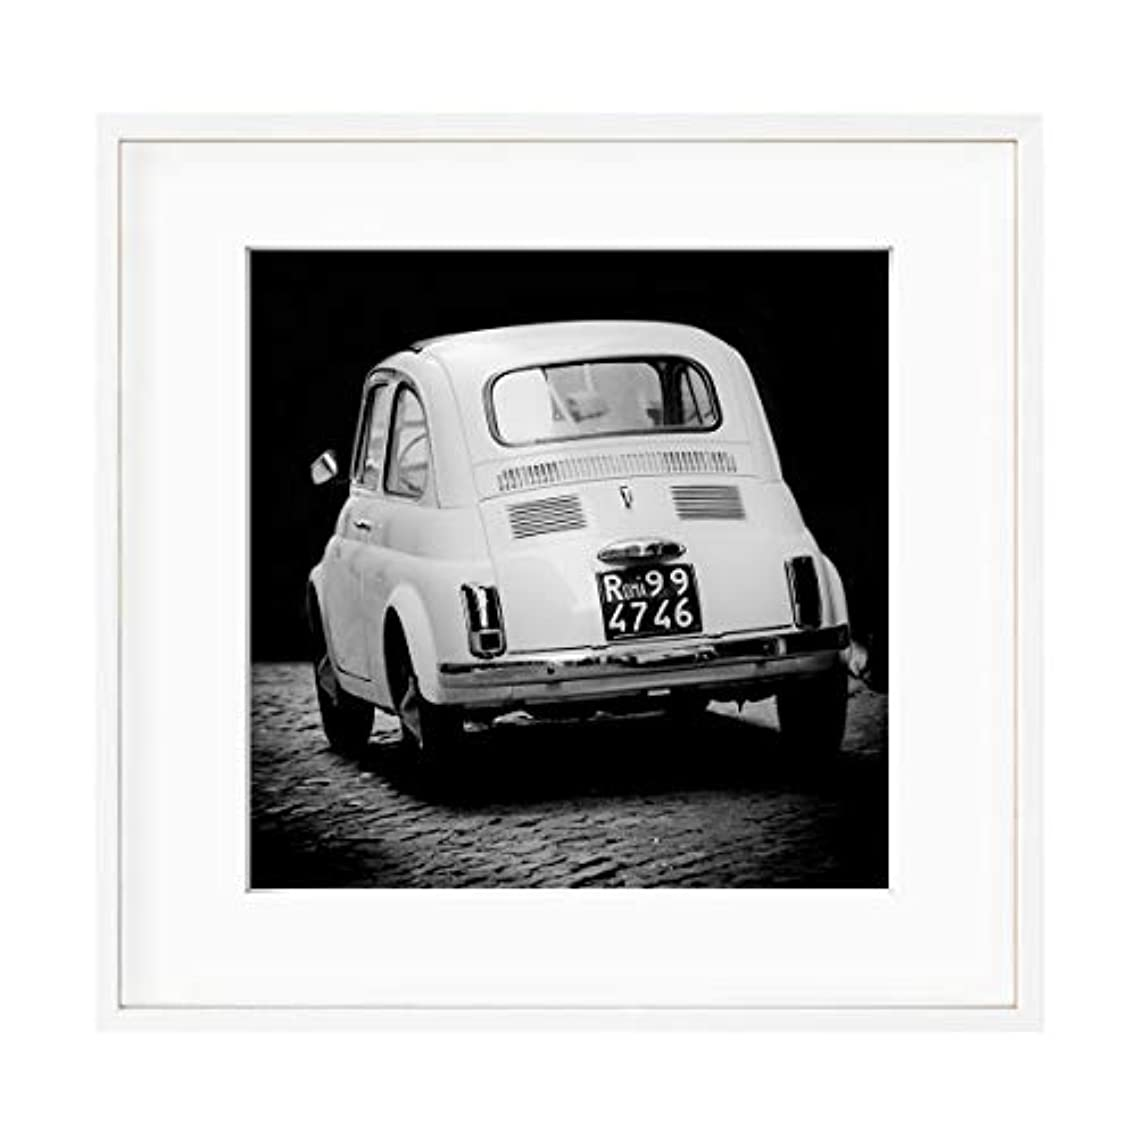 Fiat 500 Black and White Solid Oak Natural Frame with Mount, Multicolored, 60x60